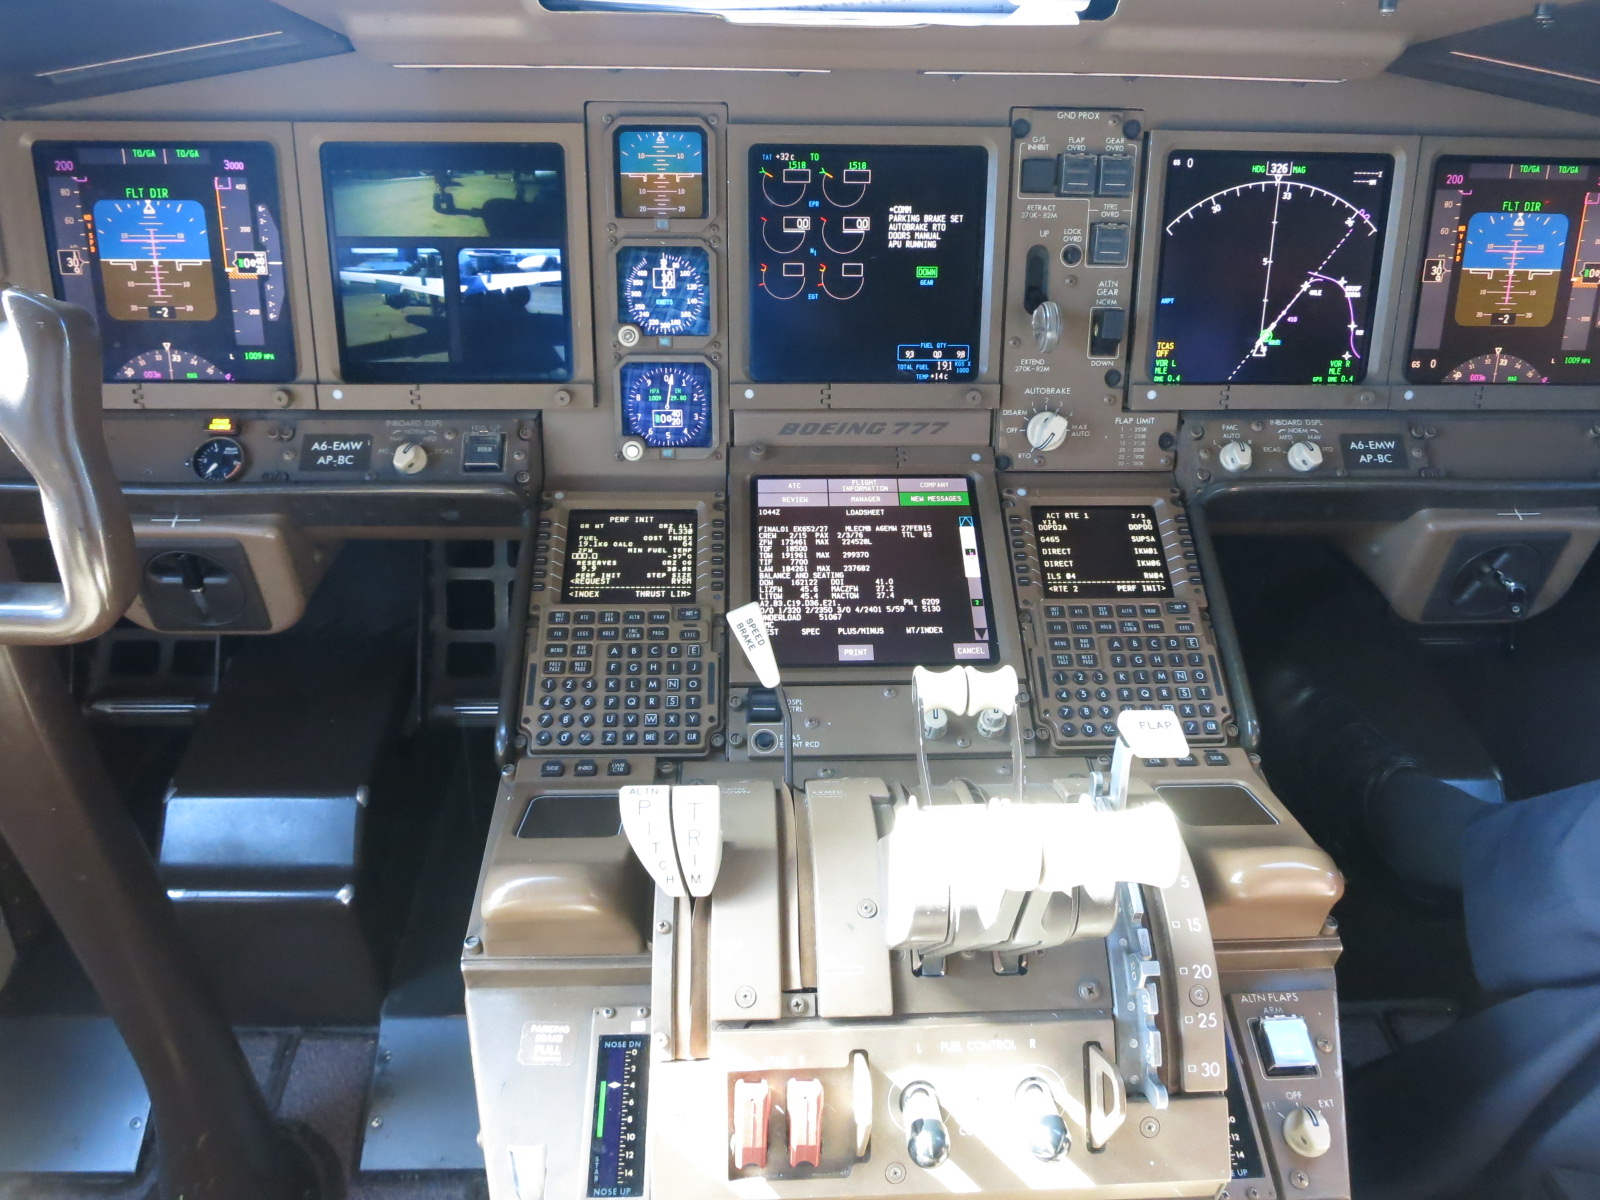 I Got A Photo Taken Of Me In The Captains Seat Singapore Airlines 777 But That Was New Delivery Aircraft At Boeing And Popped Up To Cockpit